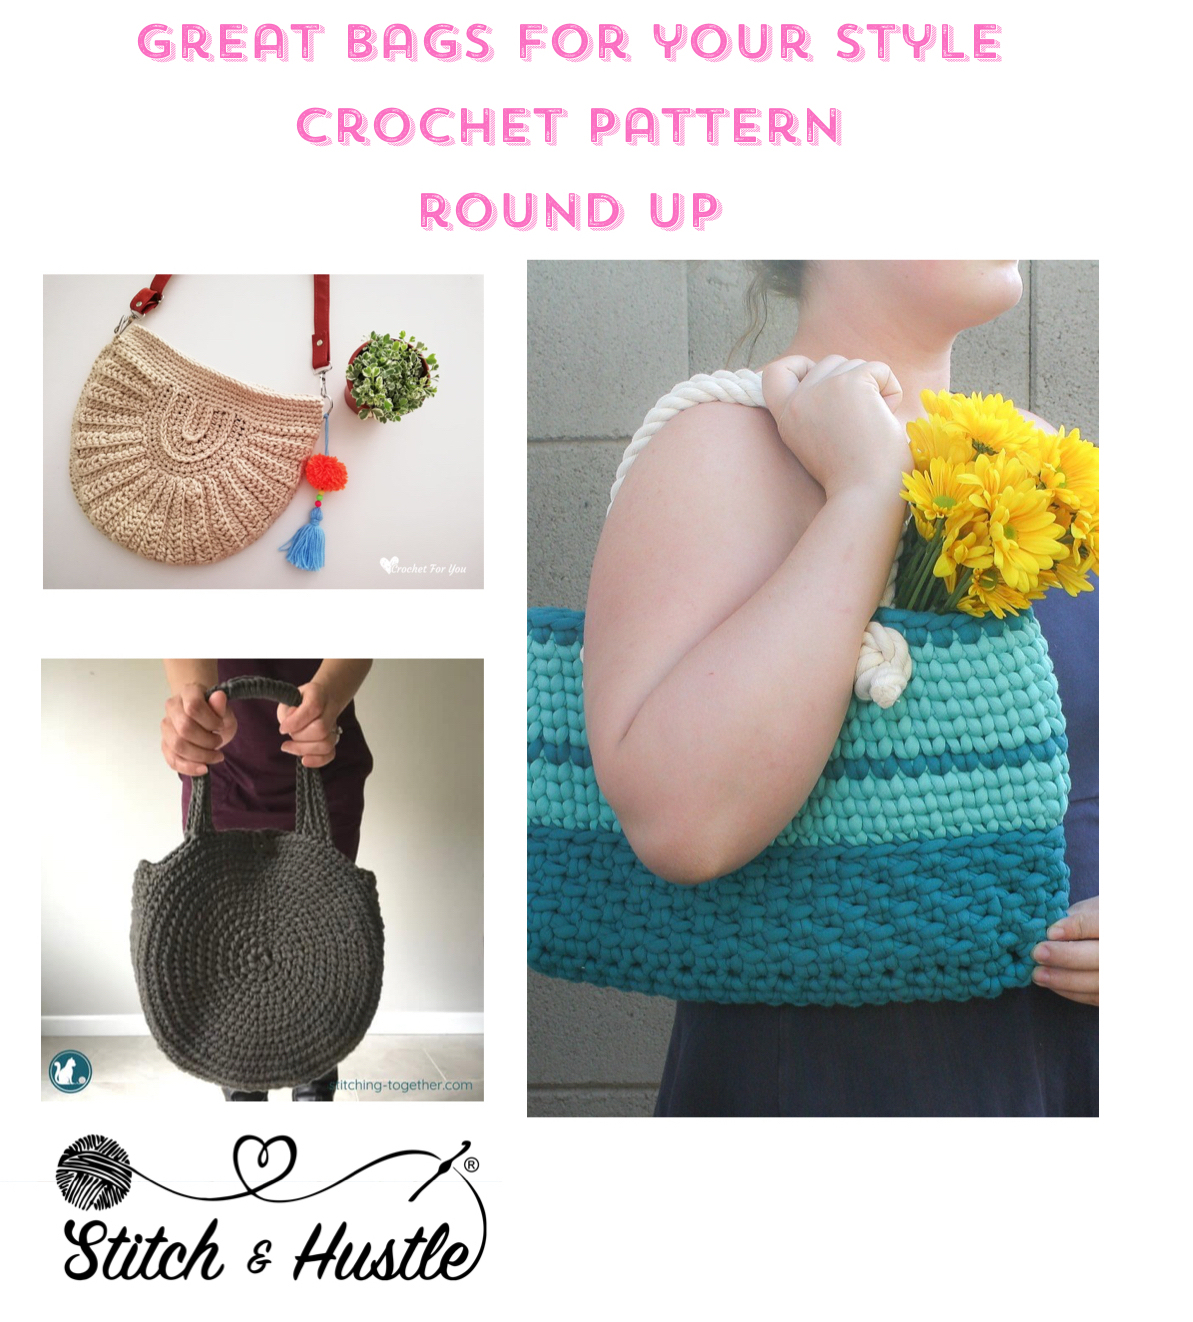 great_bags_to_crochet_free_pattern_round_up_1d copy.jpg